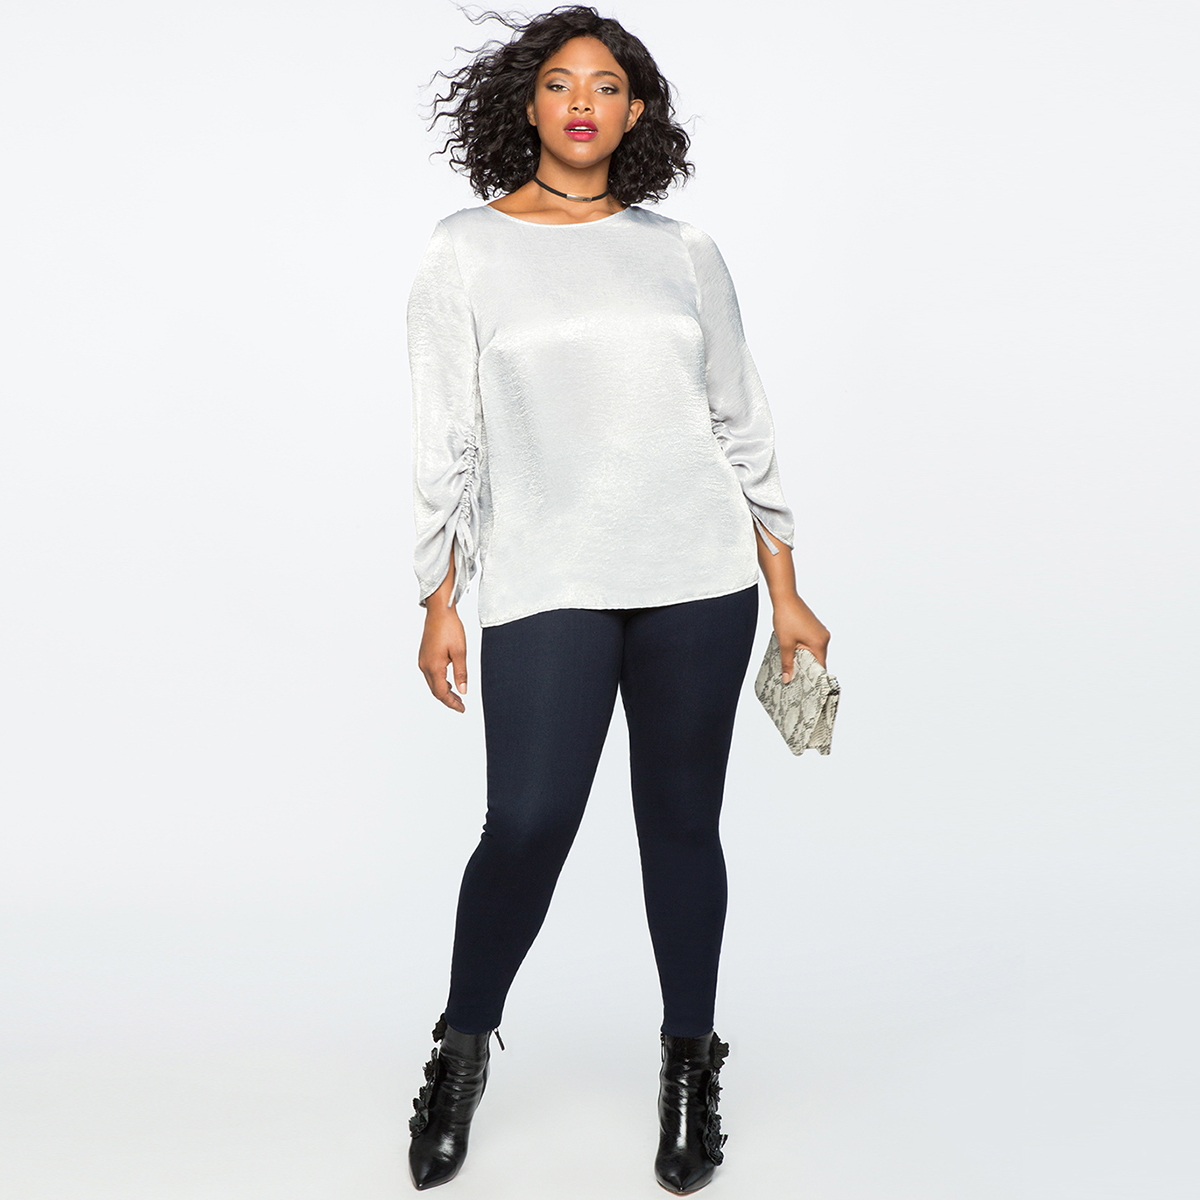 MCO 2018 Spring Lace Up Long Sleeves Plus Size Satin Women's Top Simple Office Ladies White Blouse Basic Big Women Tops 5xl 6xl 4